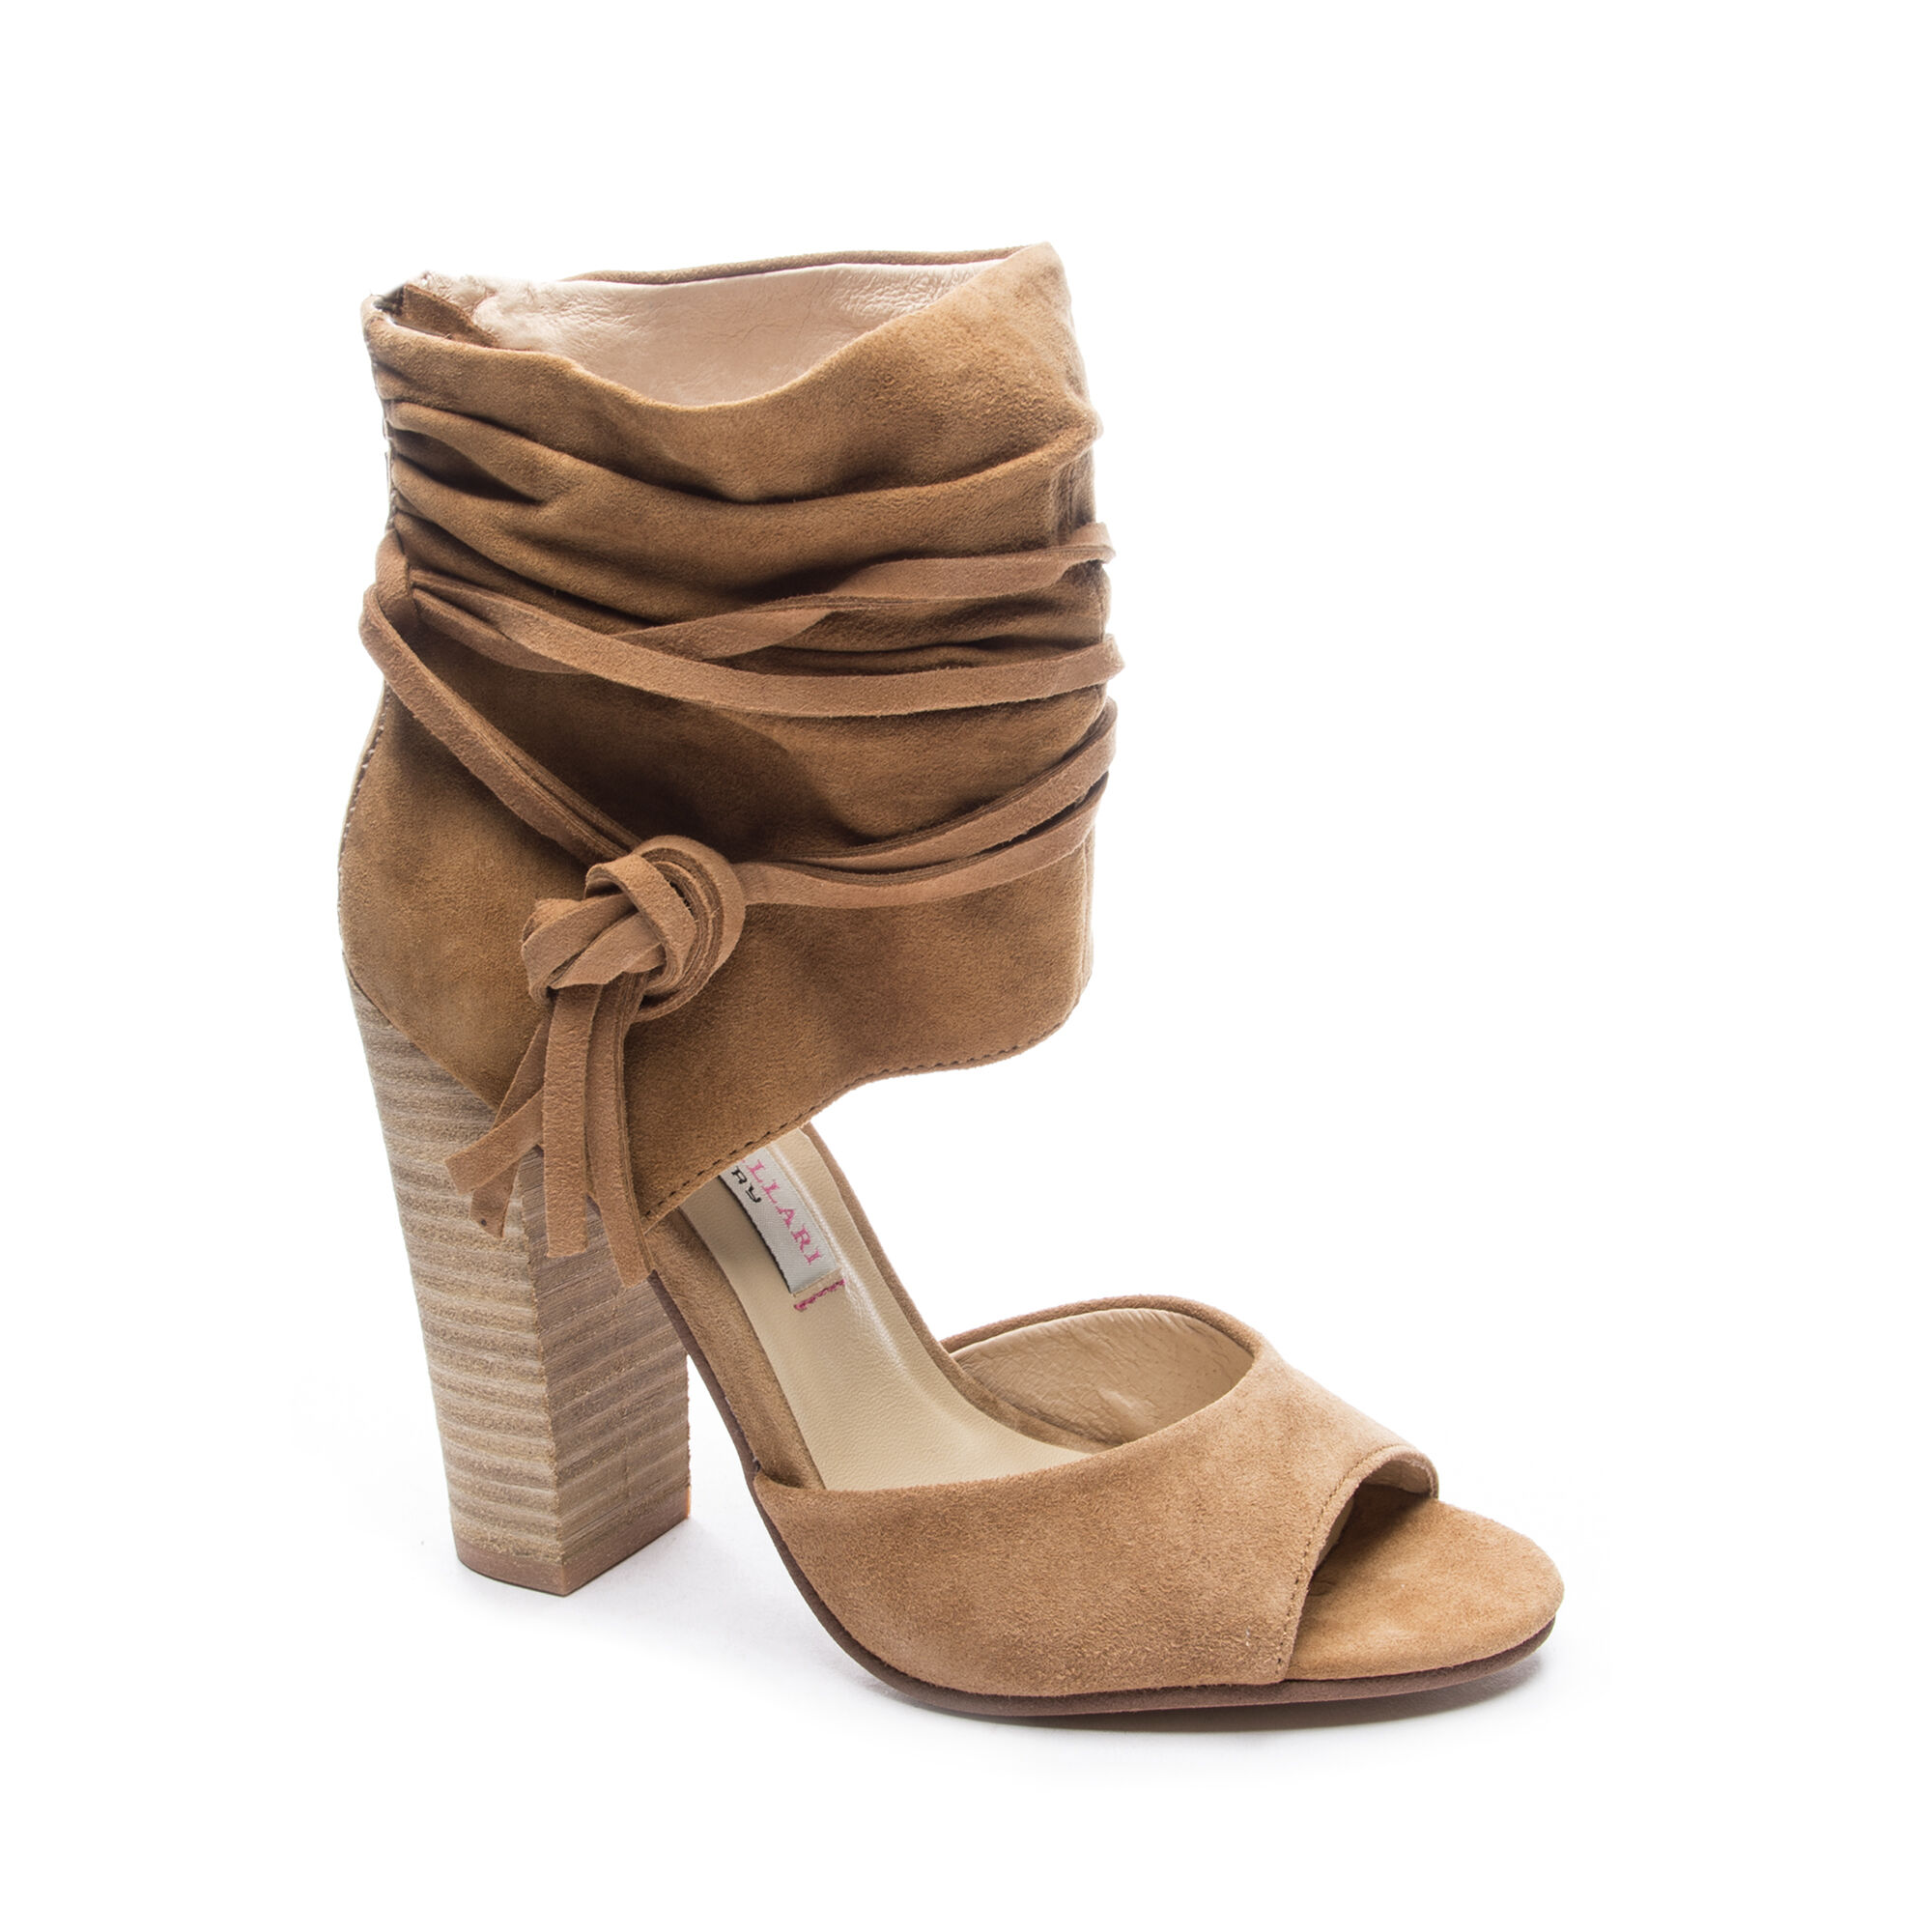 73393e183d Kristin Cavallari Leigh 2 Suede Two-Piece Sandal | Chinese Laundry